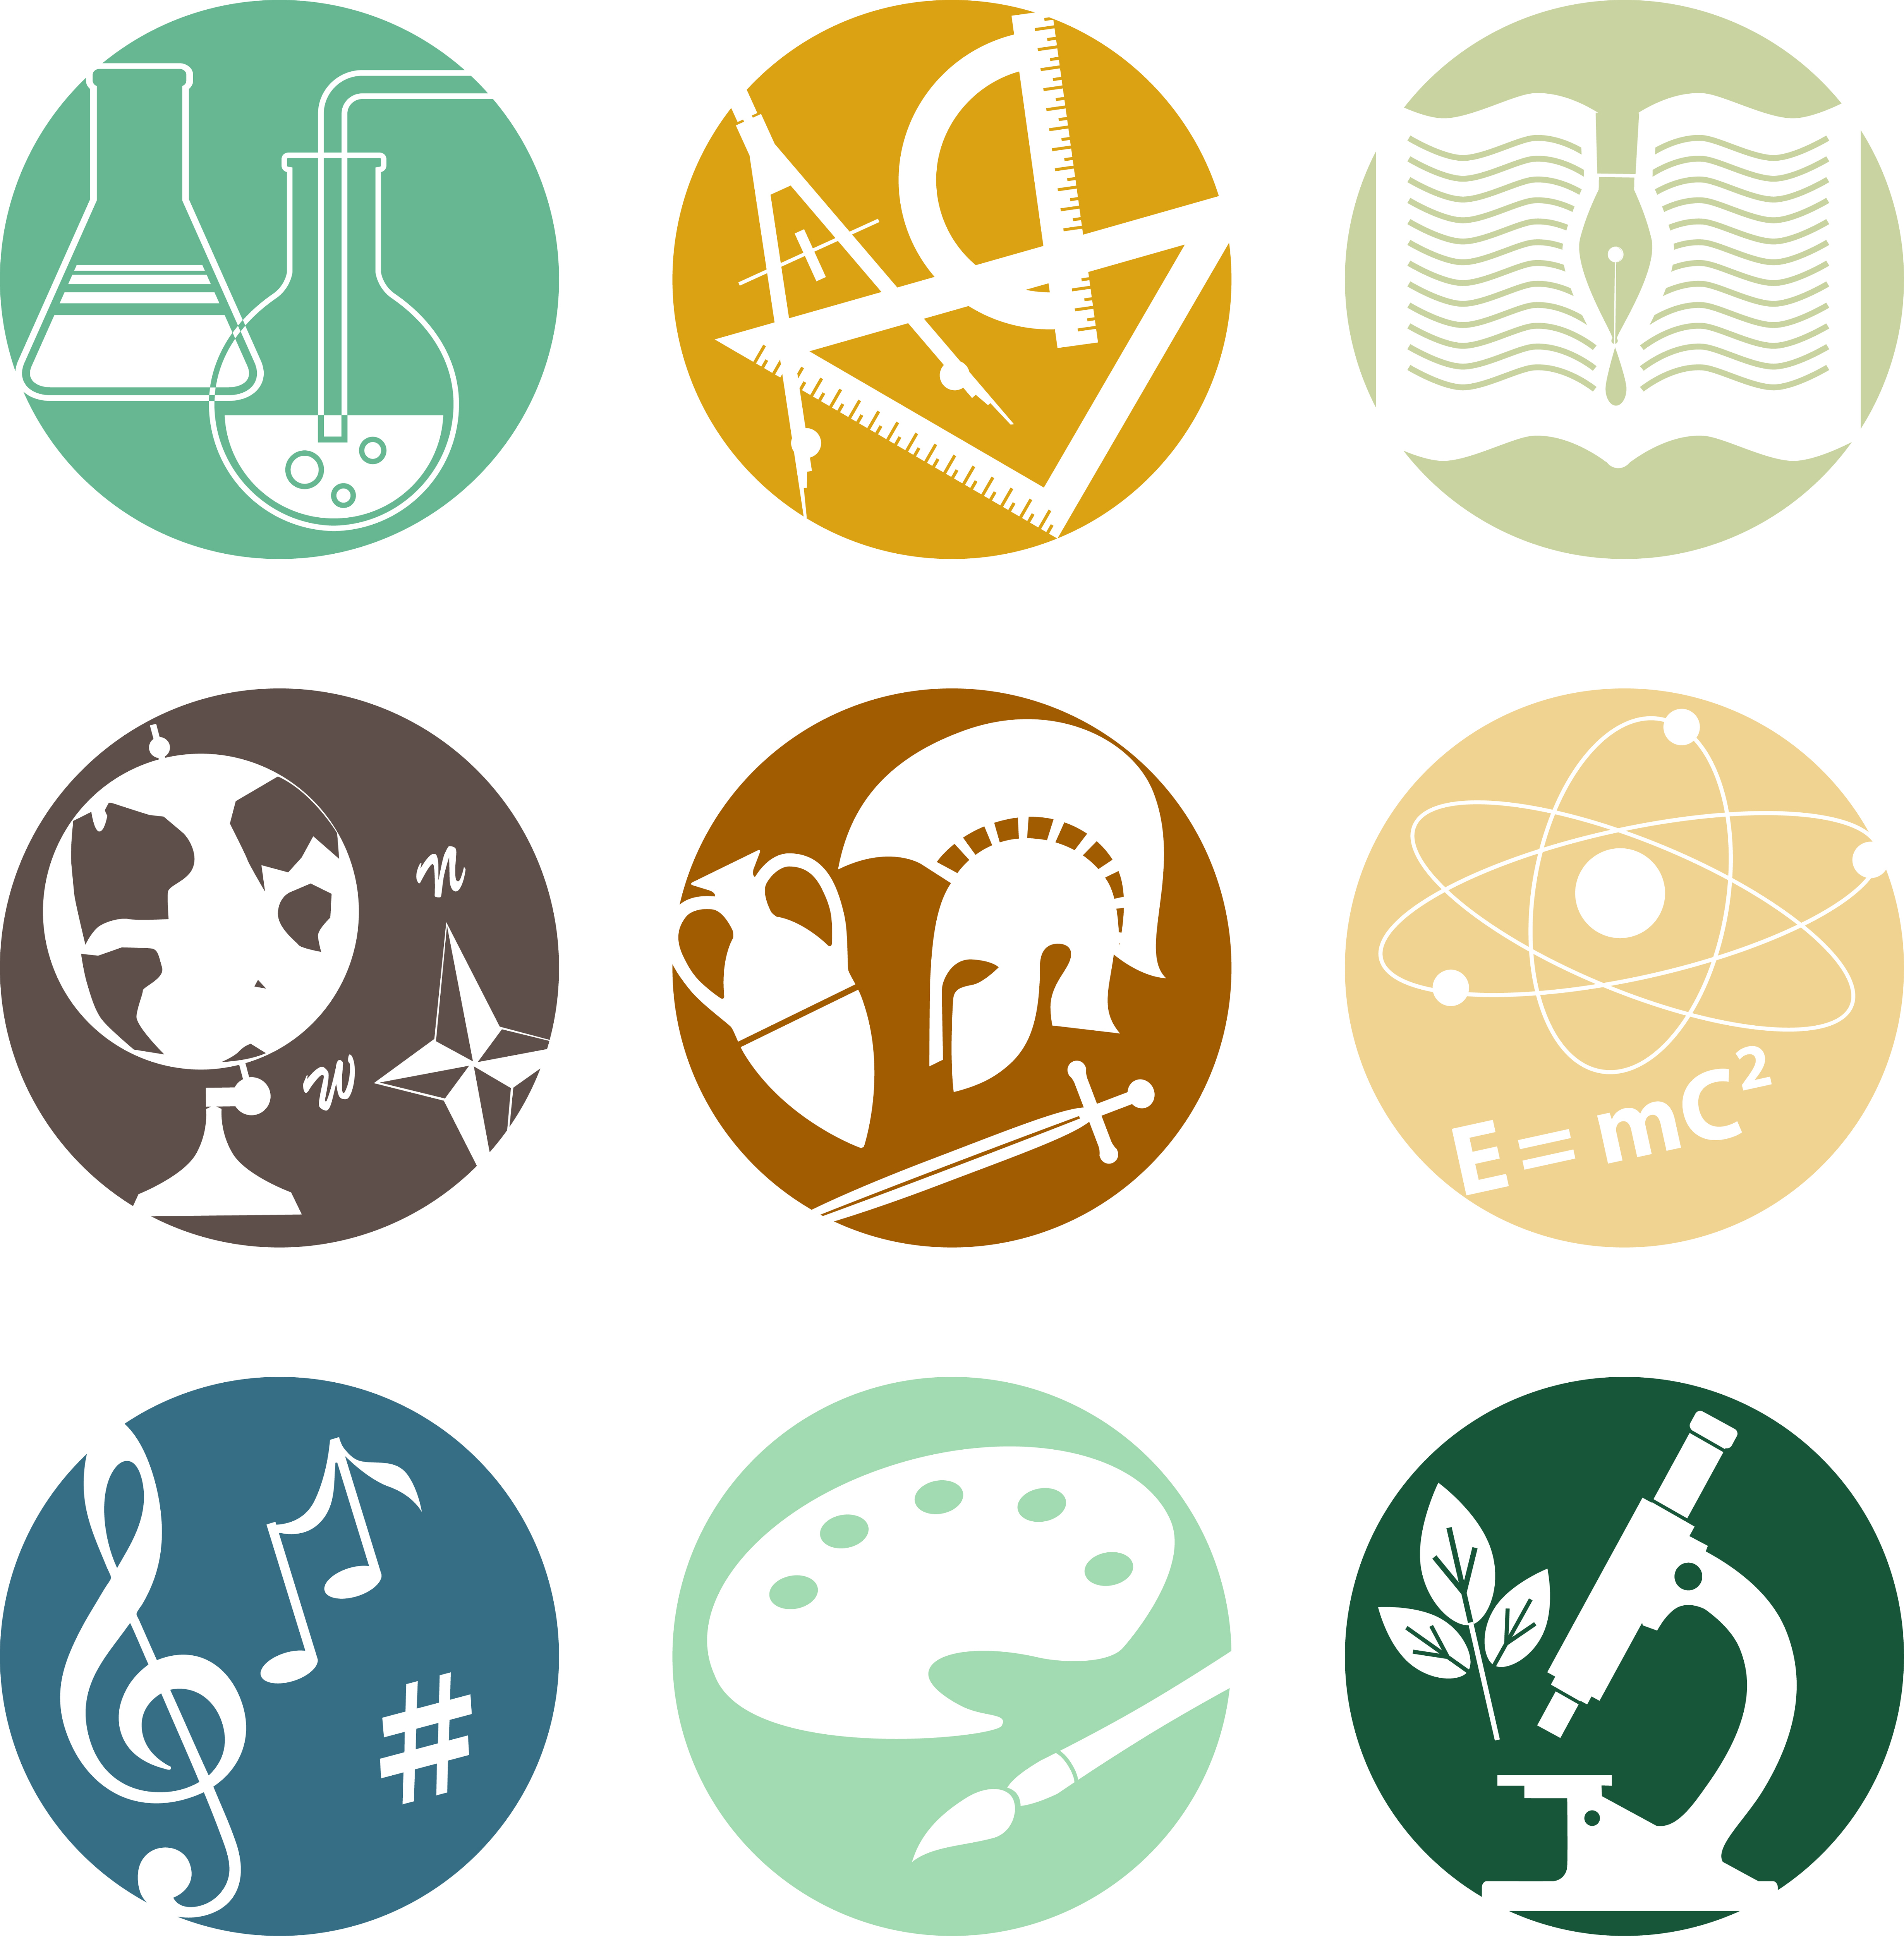 Curriculum clipart education icon. Integration the lookstein center